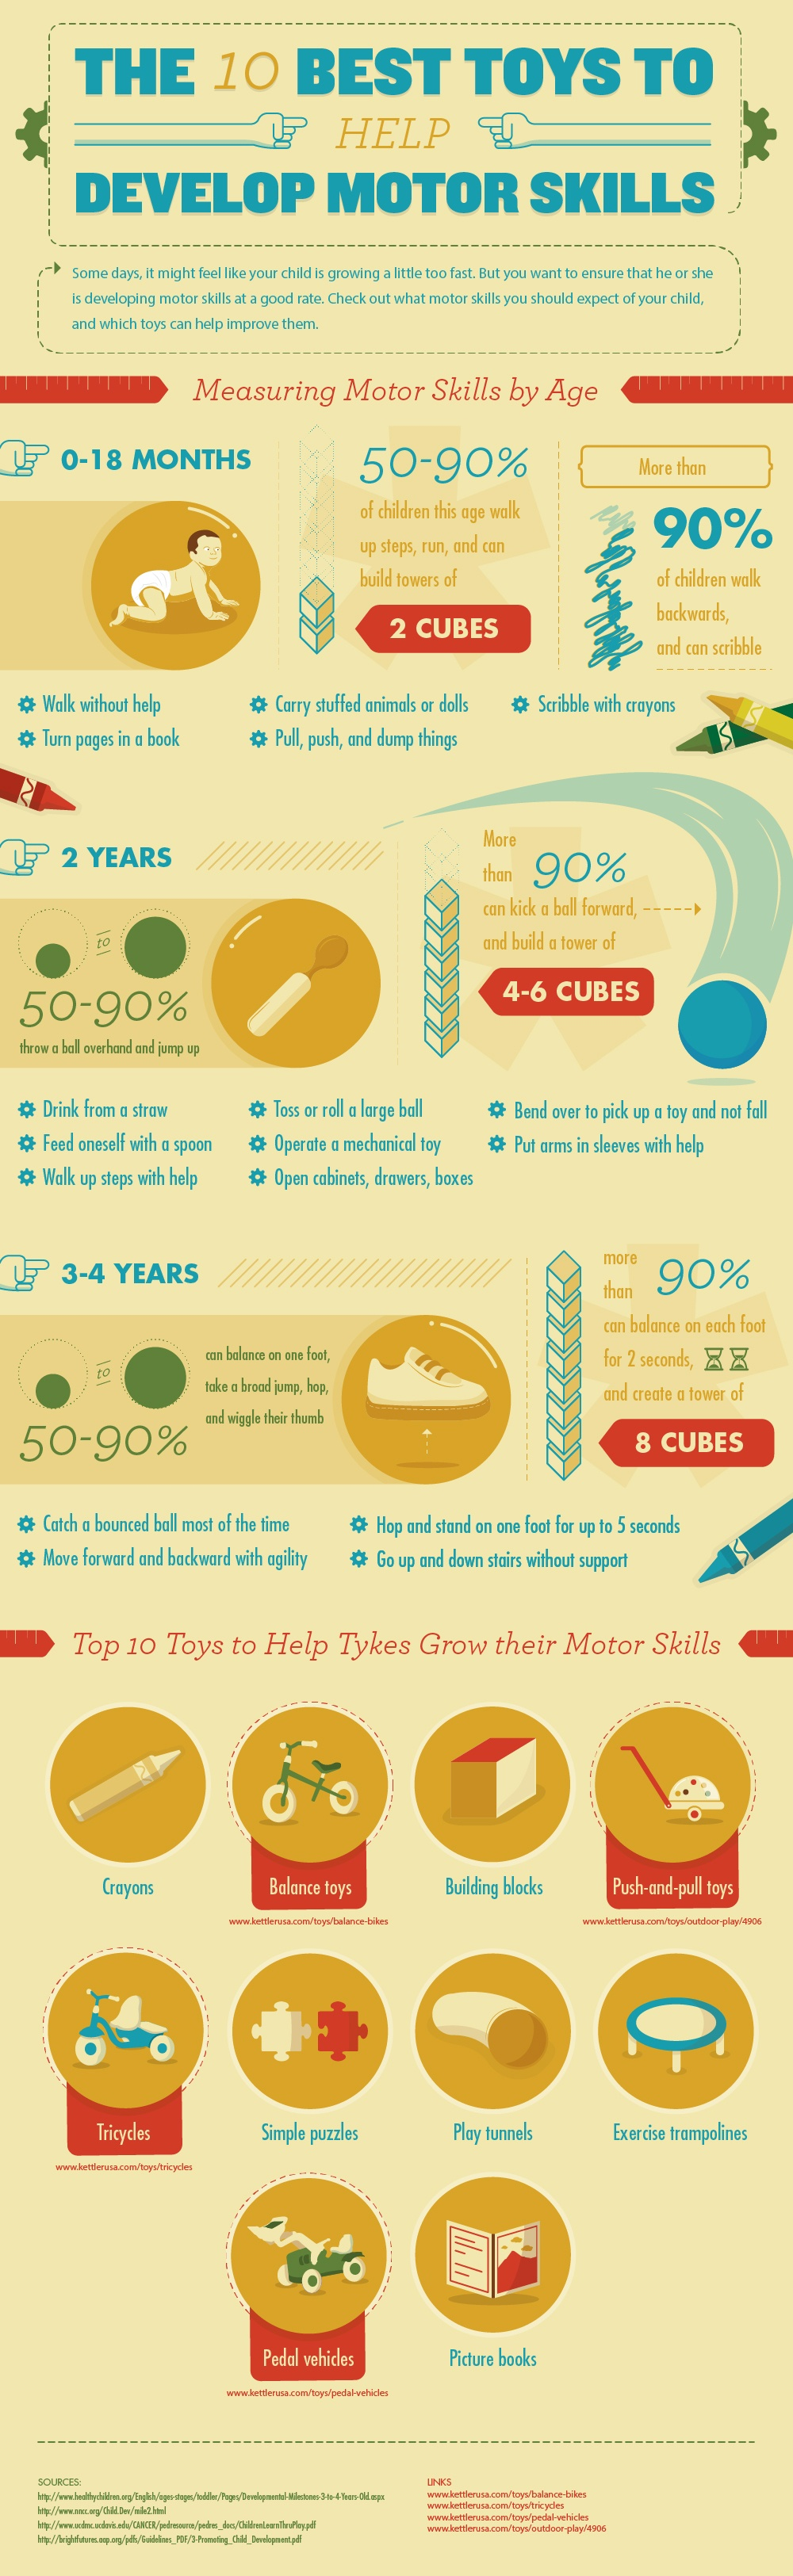 The 10 best toys to help develop motor skills infographic for Toys to improve motor skills